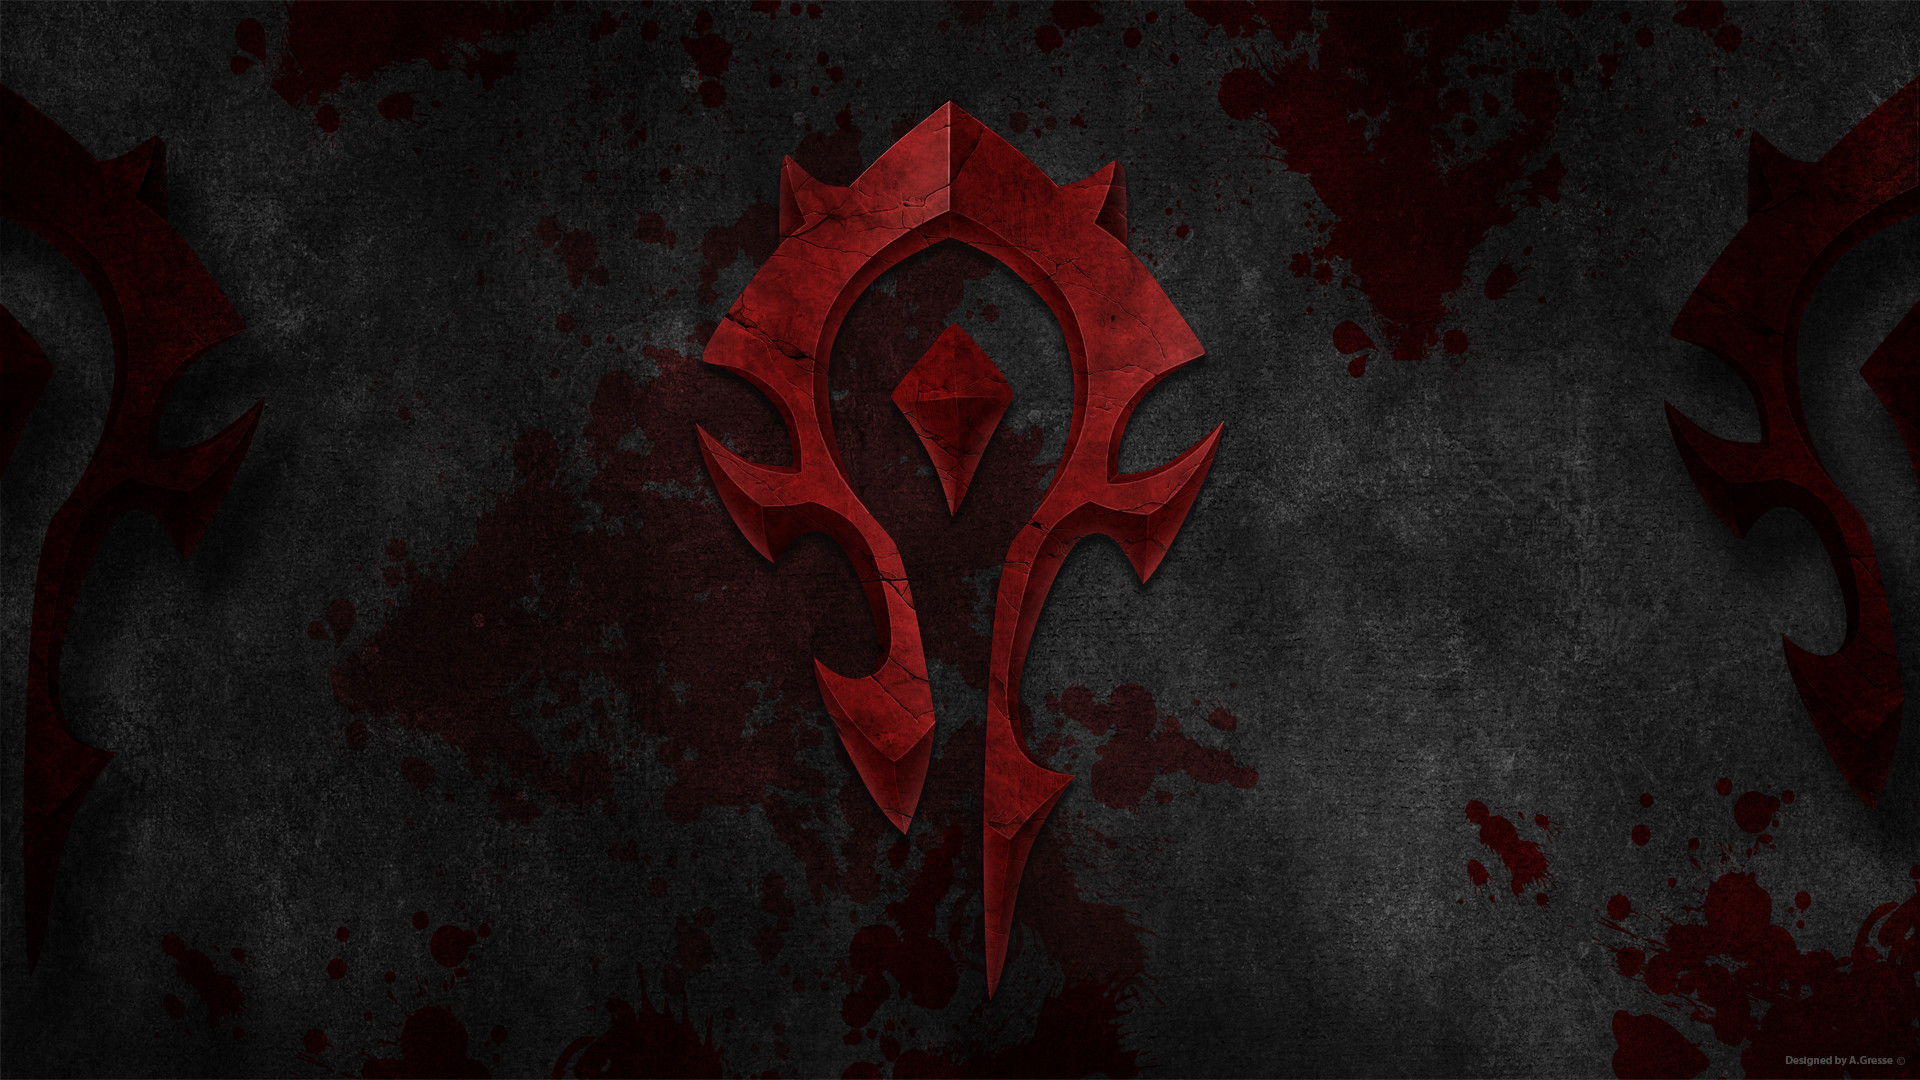 1920x1080 Wow Horde HD Wallpaper | Wallpapers | Pinterest | Horde and Hd wallpaper